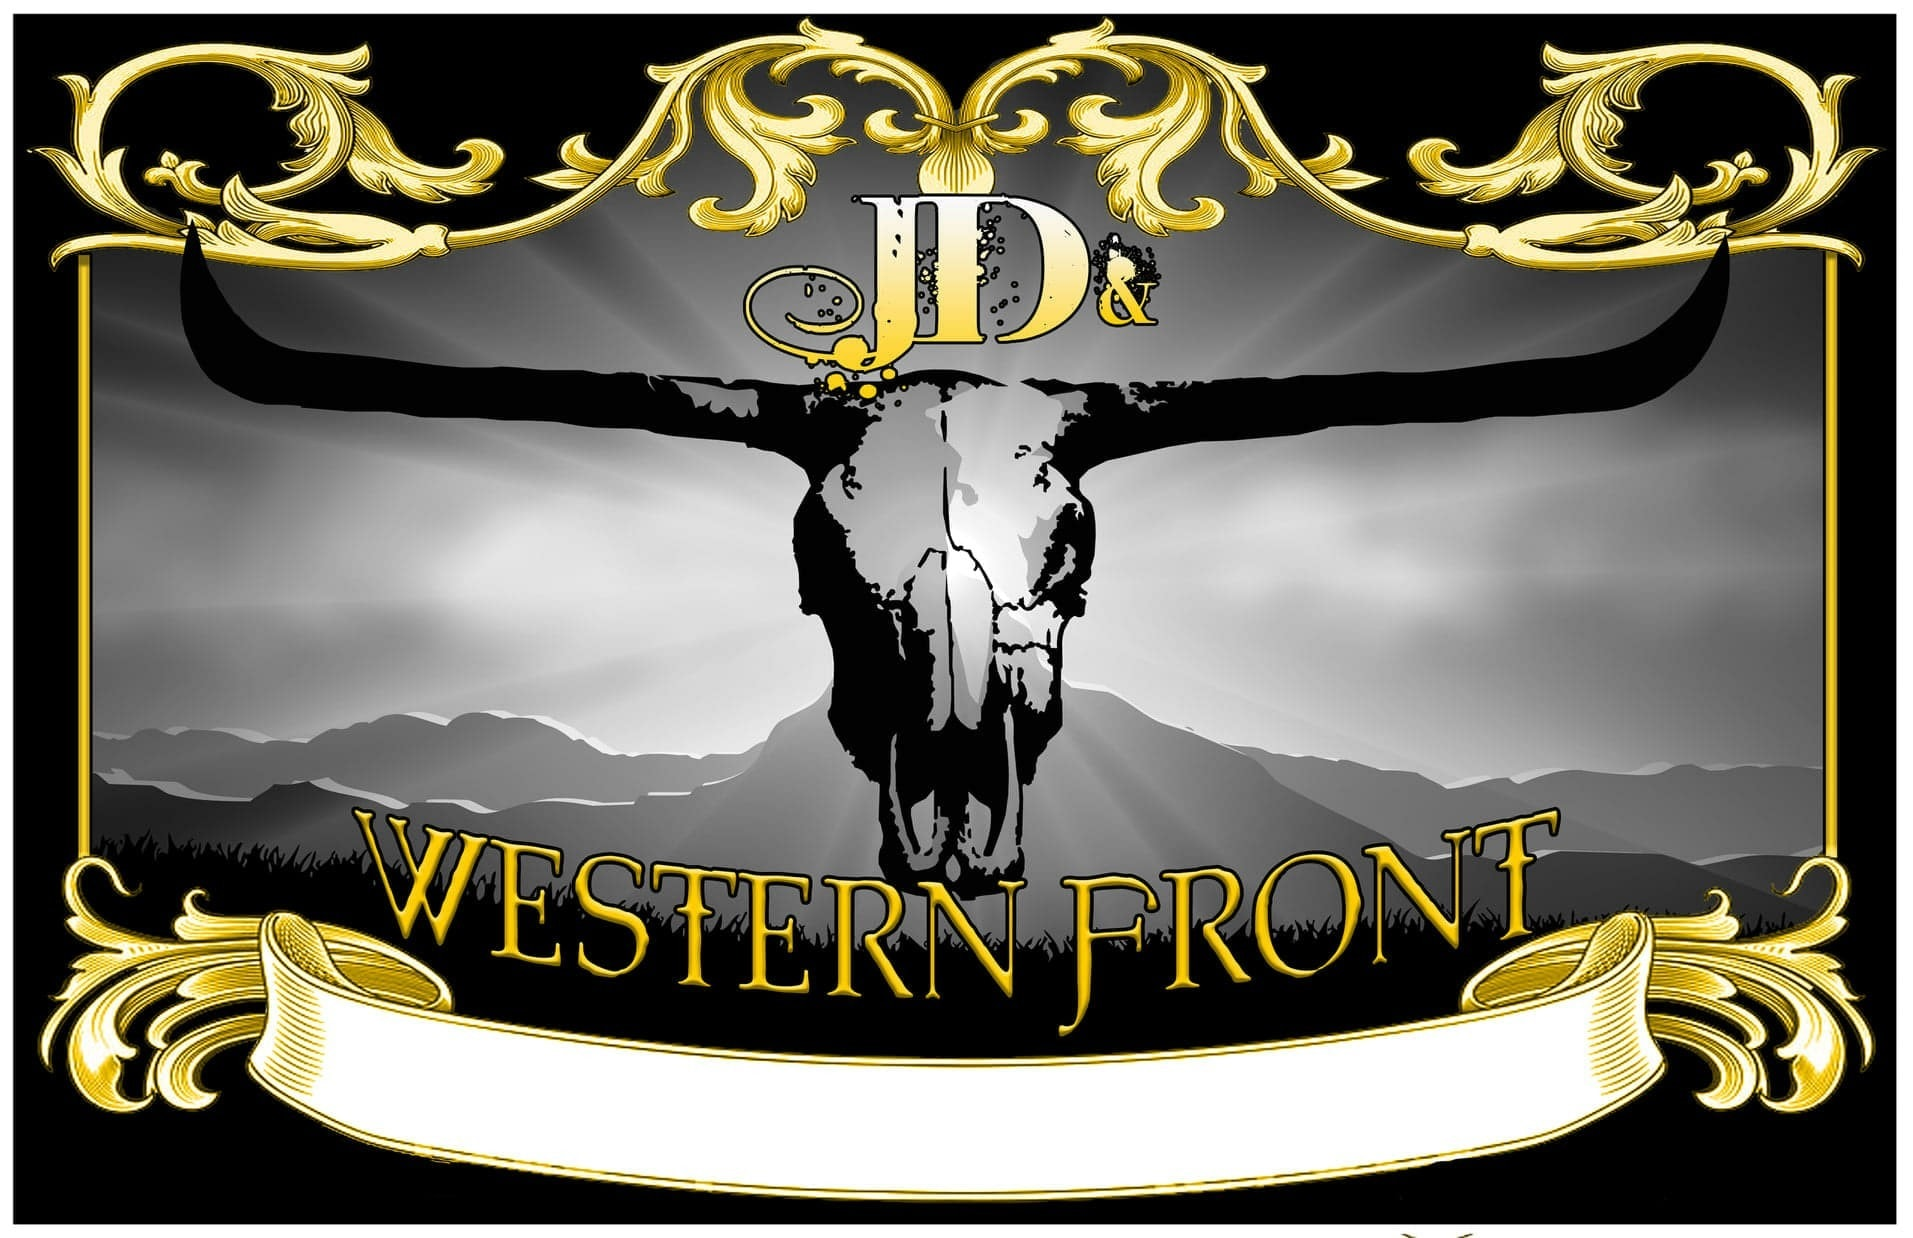 JD and the Western Front Band